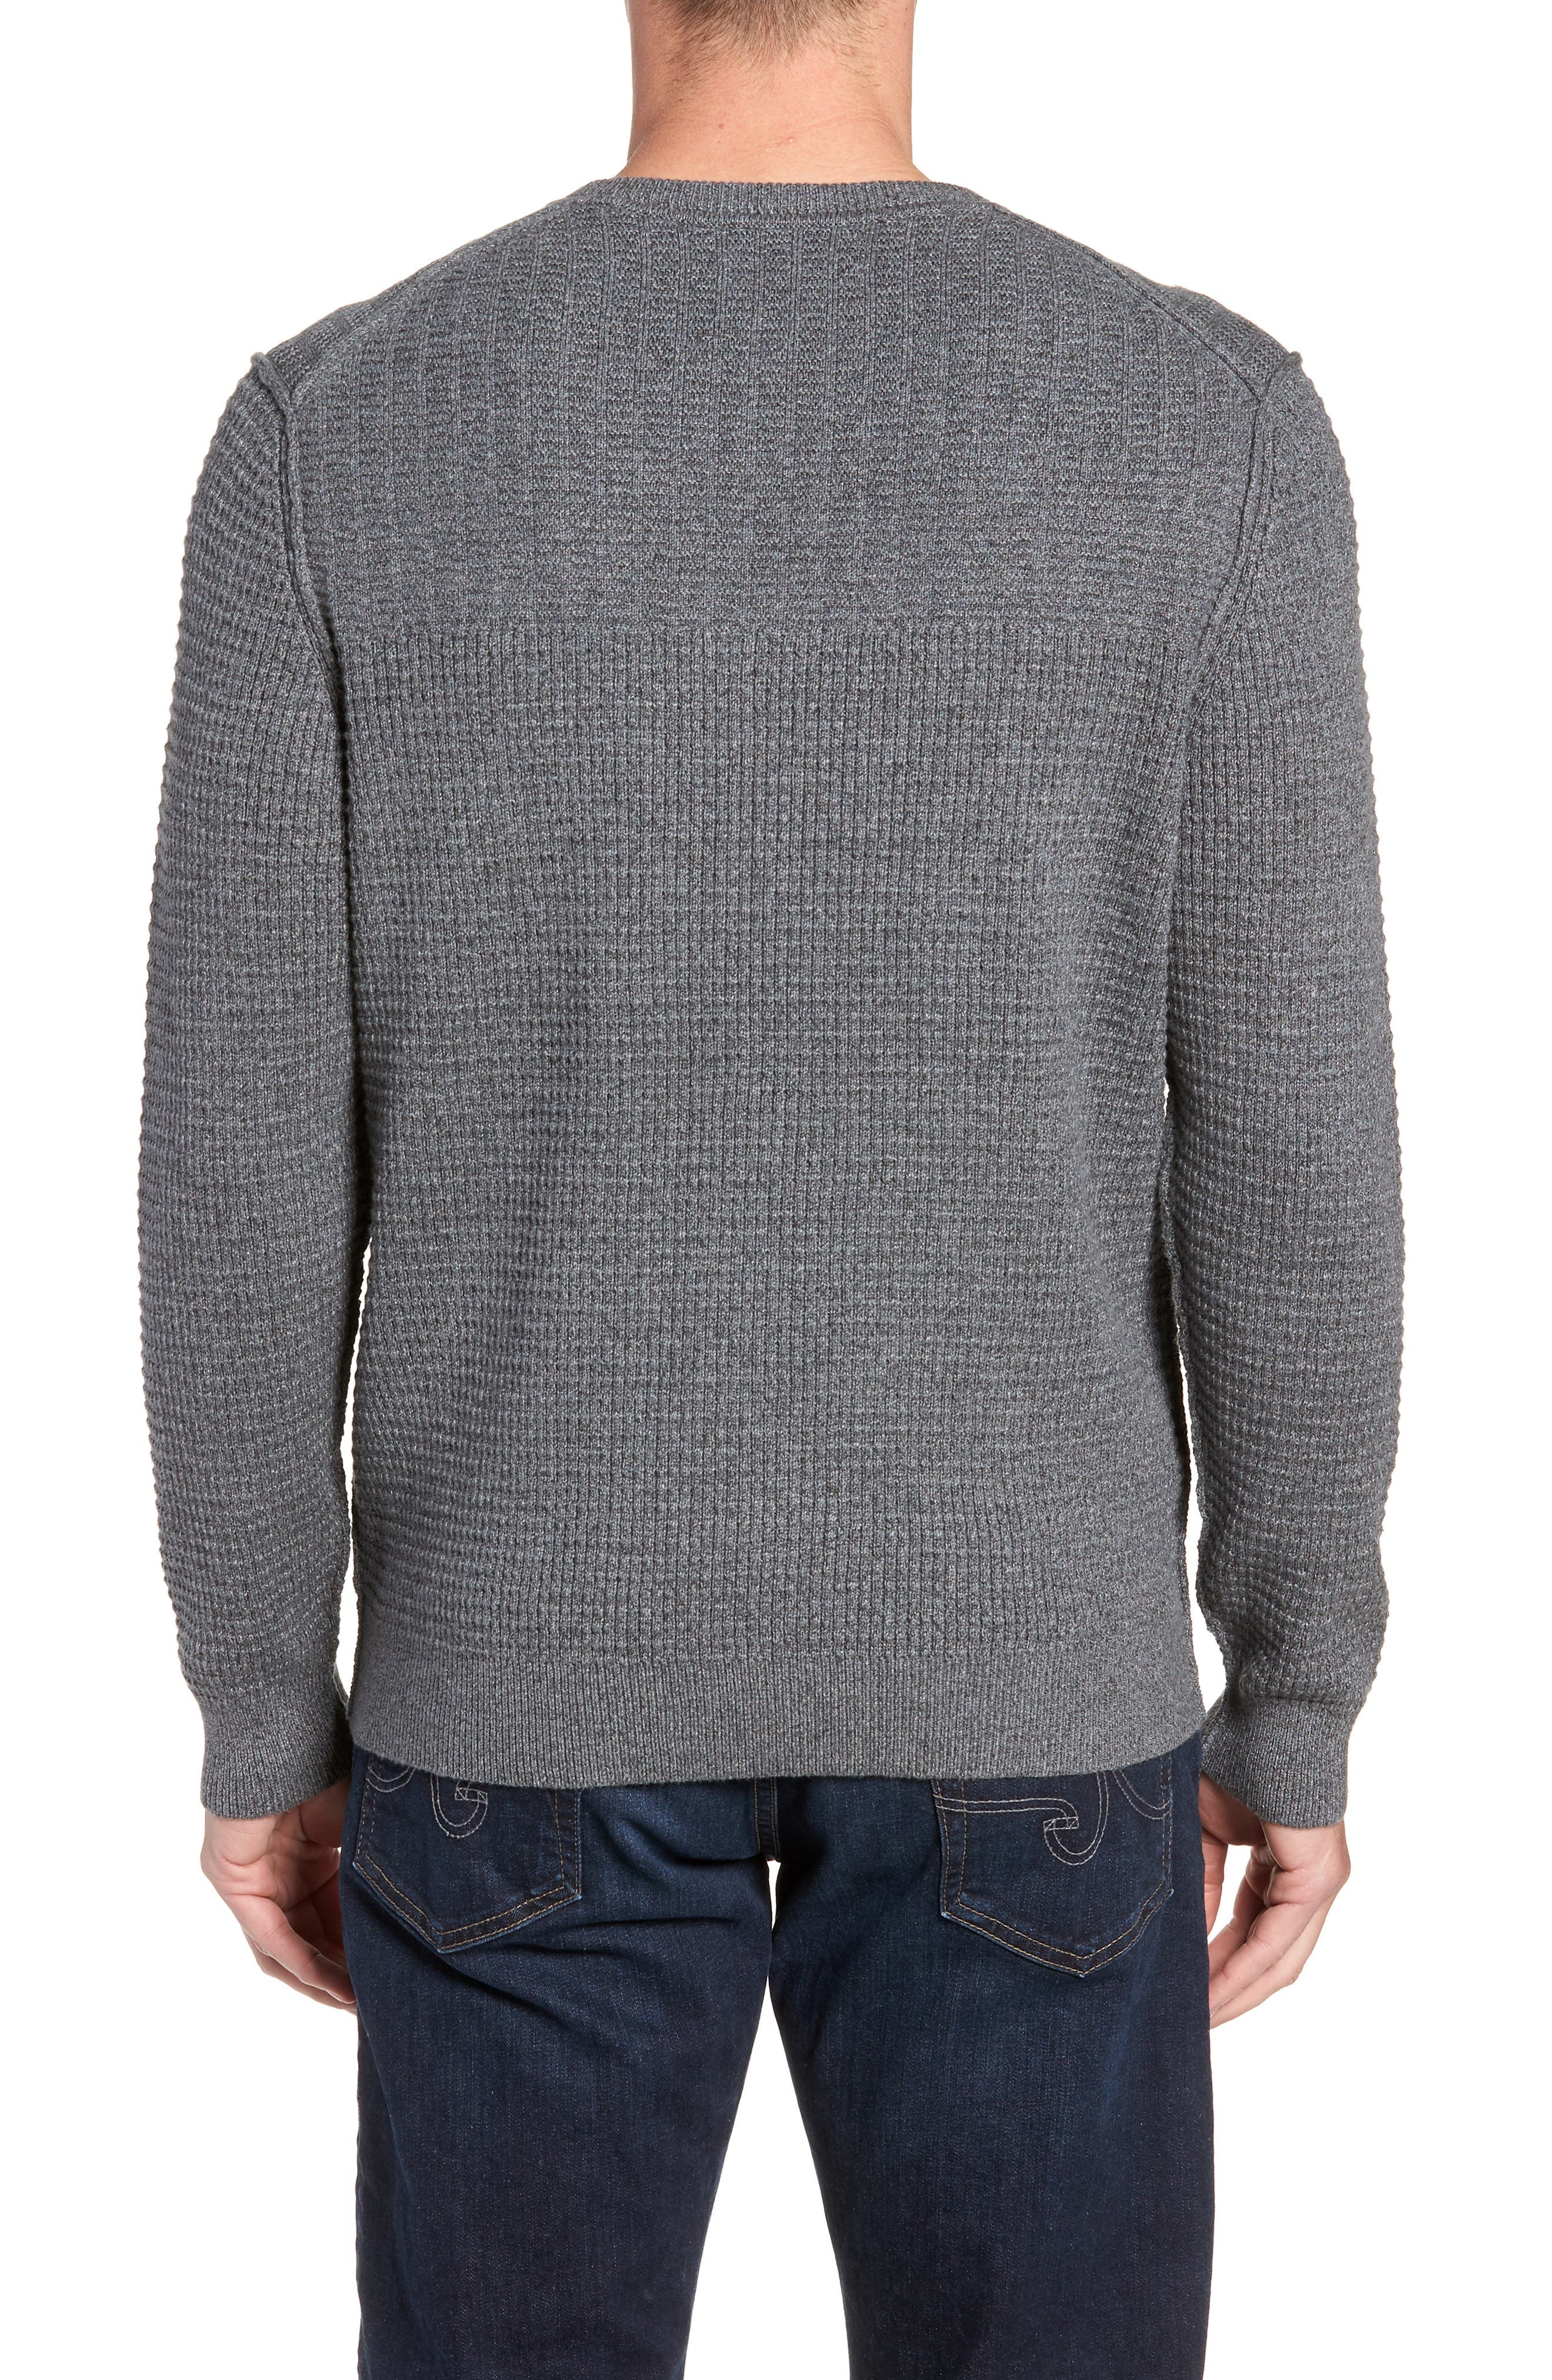 Isidro V-Neck Regular Fit Sweater,                             Alternate thumbnail 2, color,                             CAVE